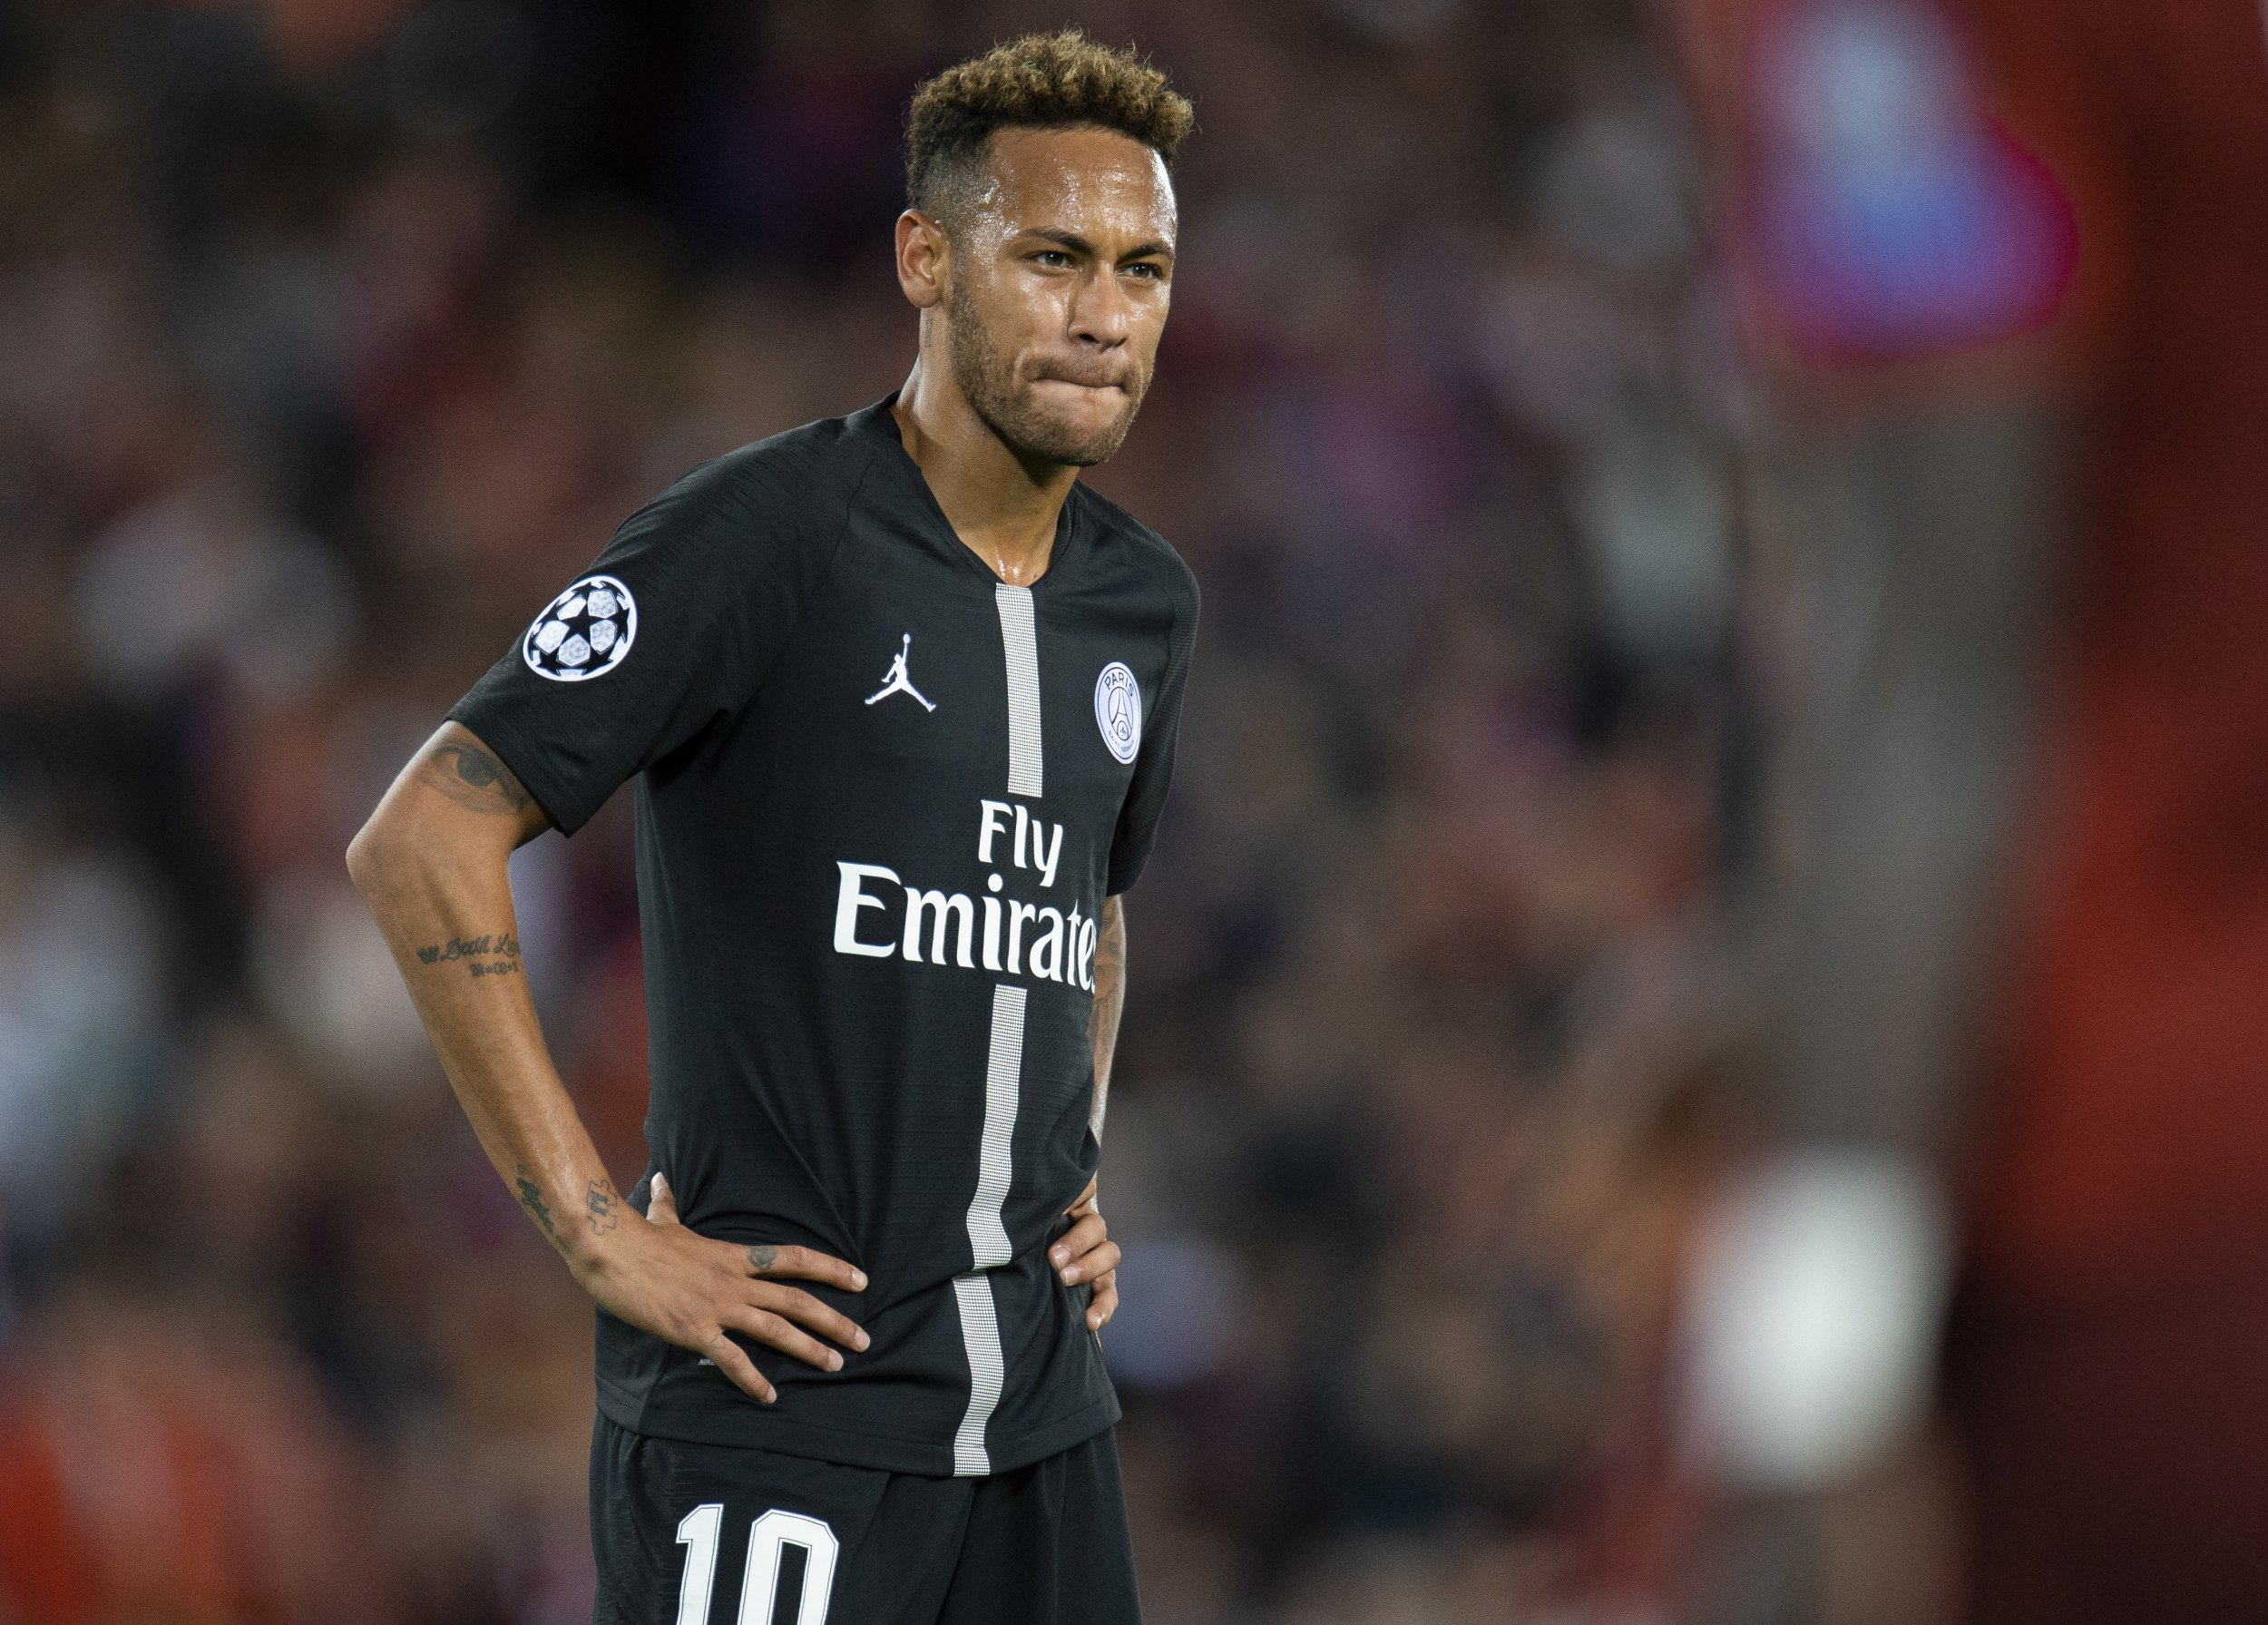 epa07031084 Paris Saint-Germain's Neymar reacts during the UEFA Champions League Group C soccer match between Liverpool and Paris Saint-Germain held at the Anfield in Liverpool, Britain, 18 September 2018. EPA/PETER POWELL